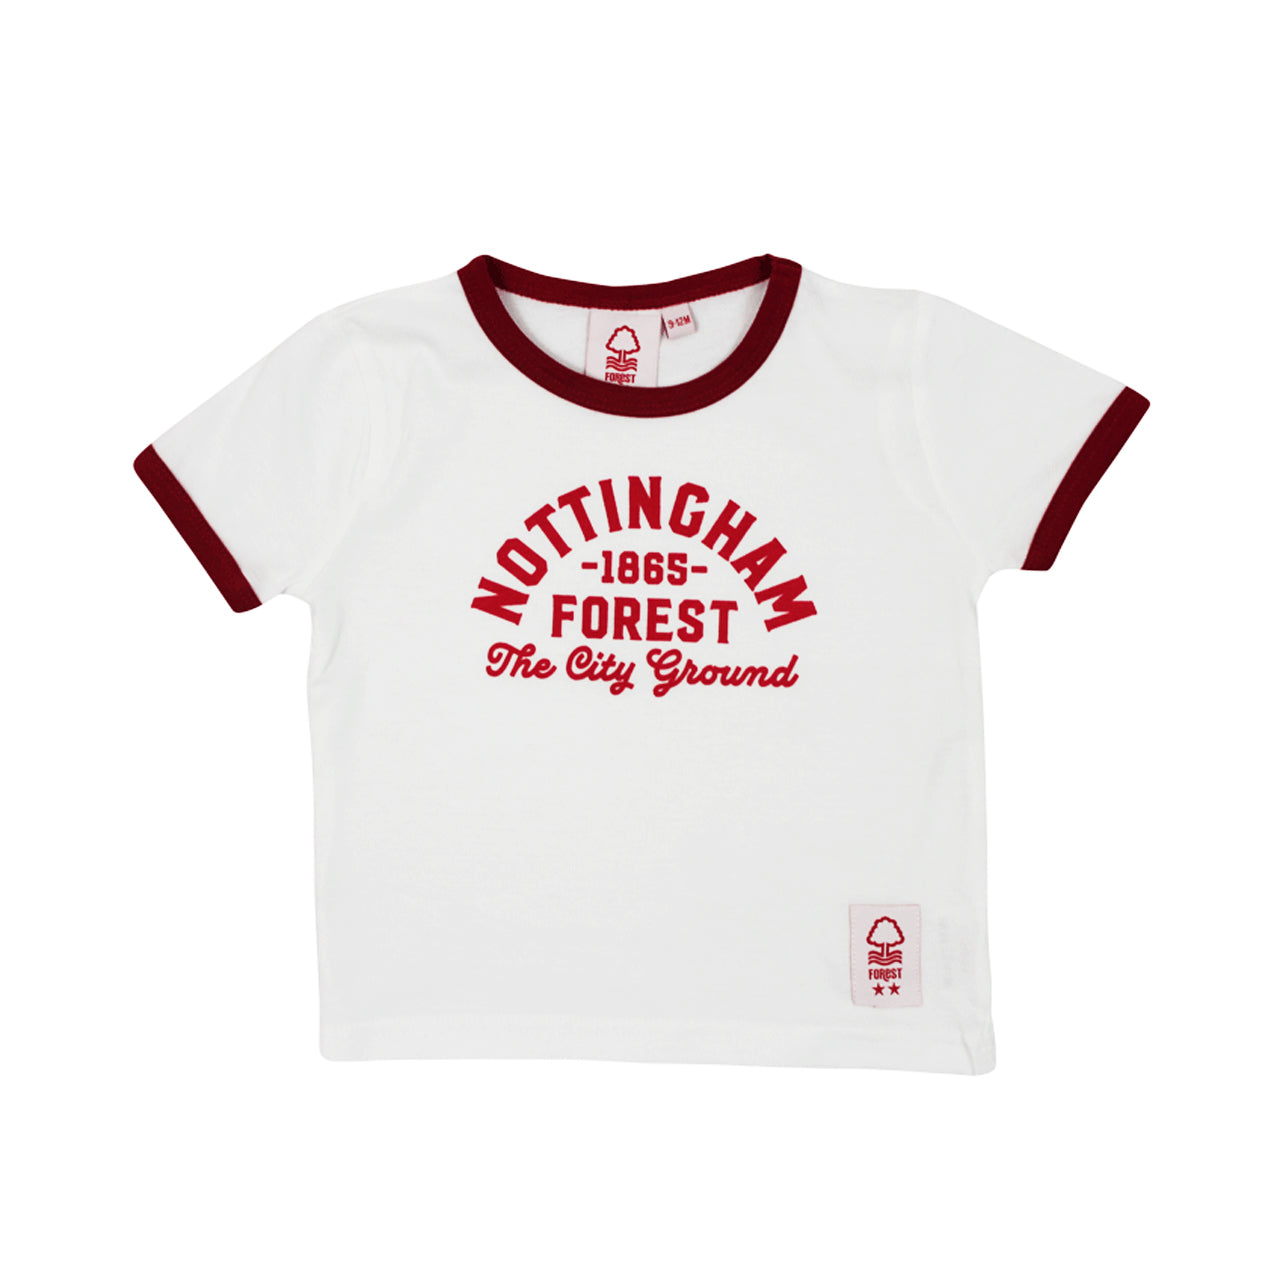 NFFC Baby White City Ground T-Shirt